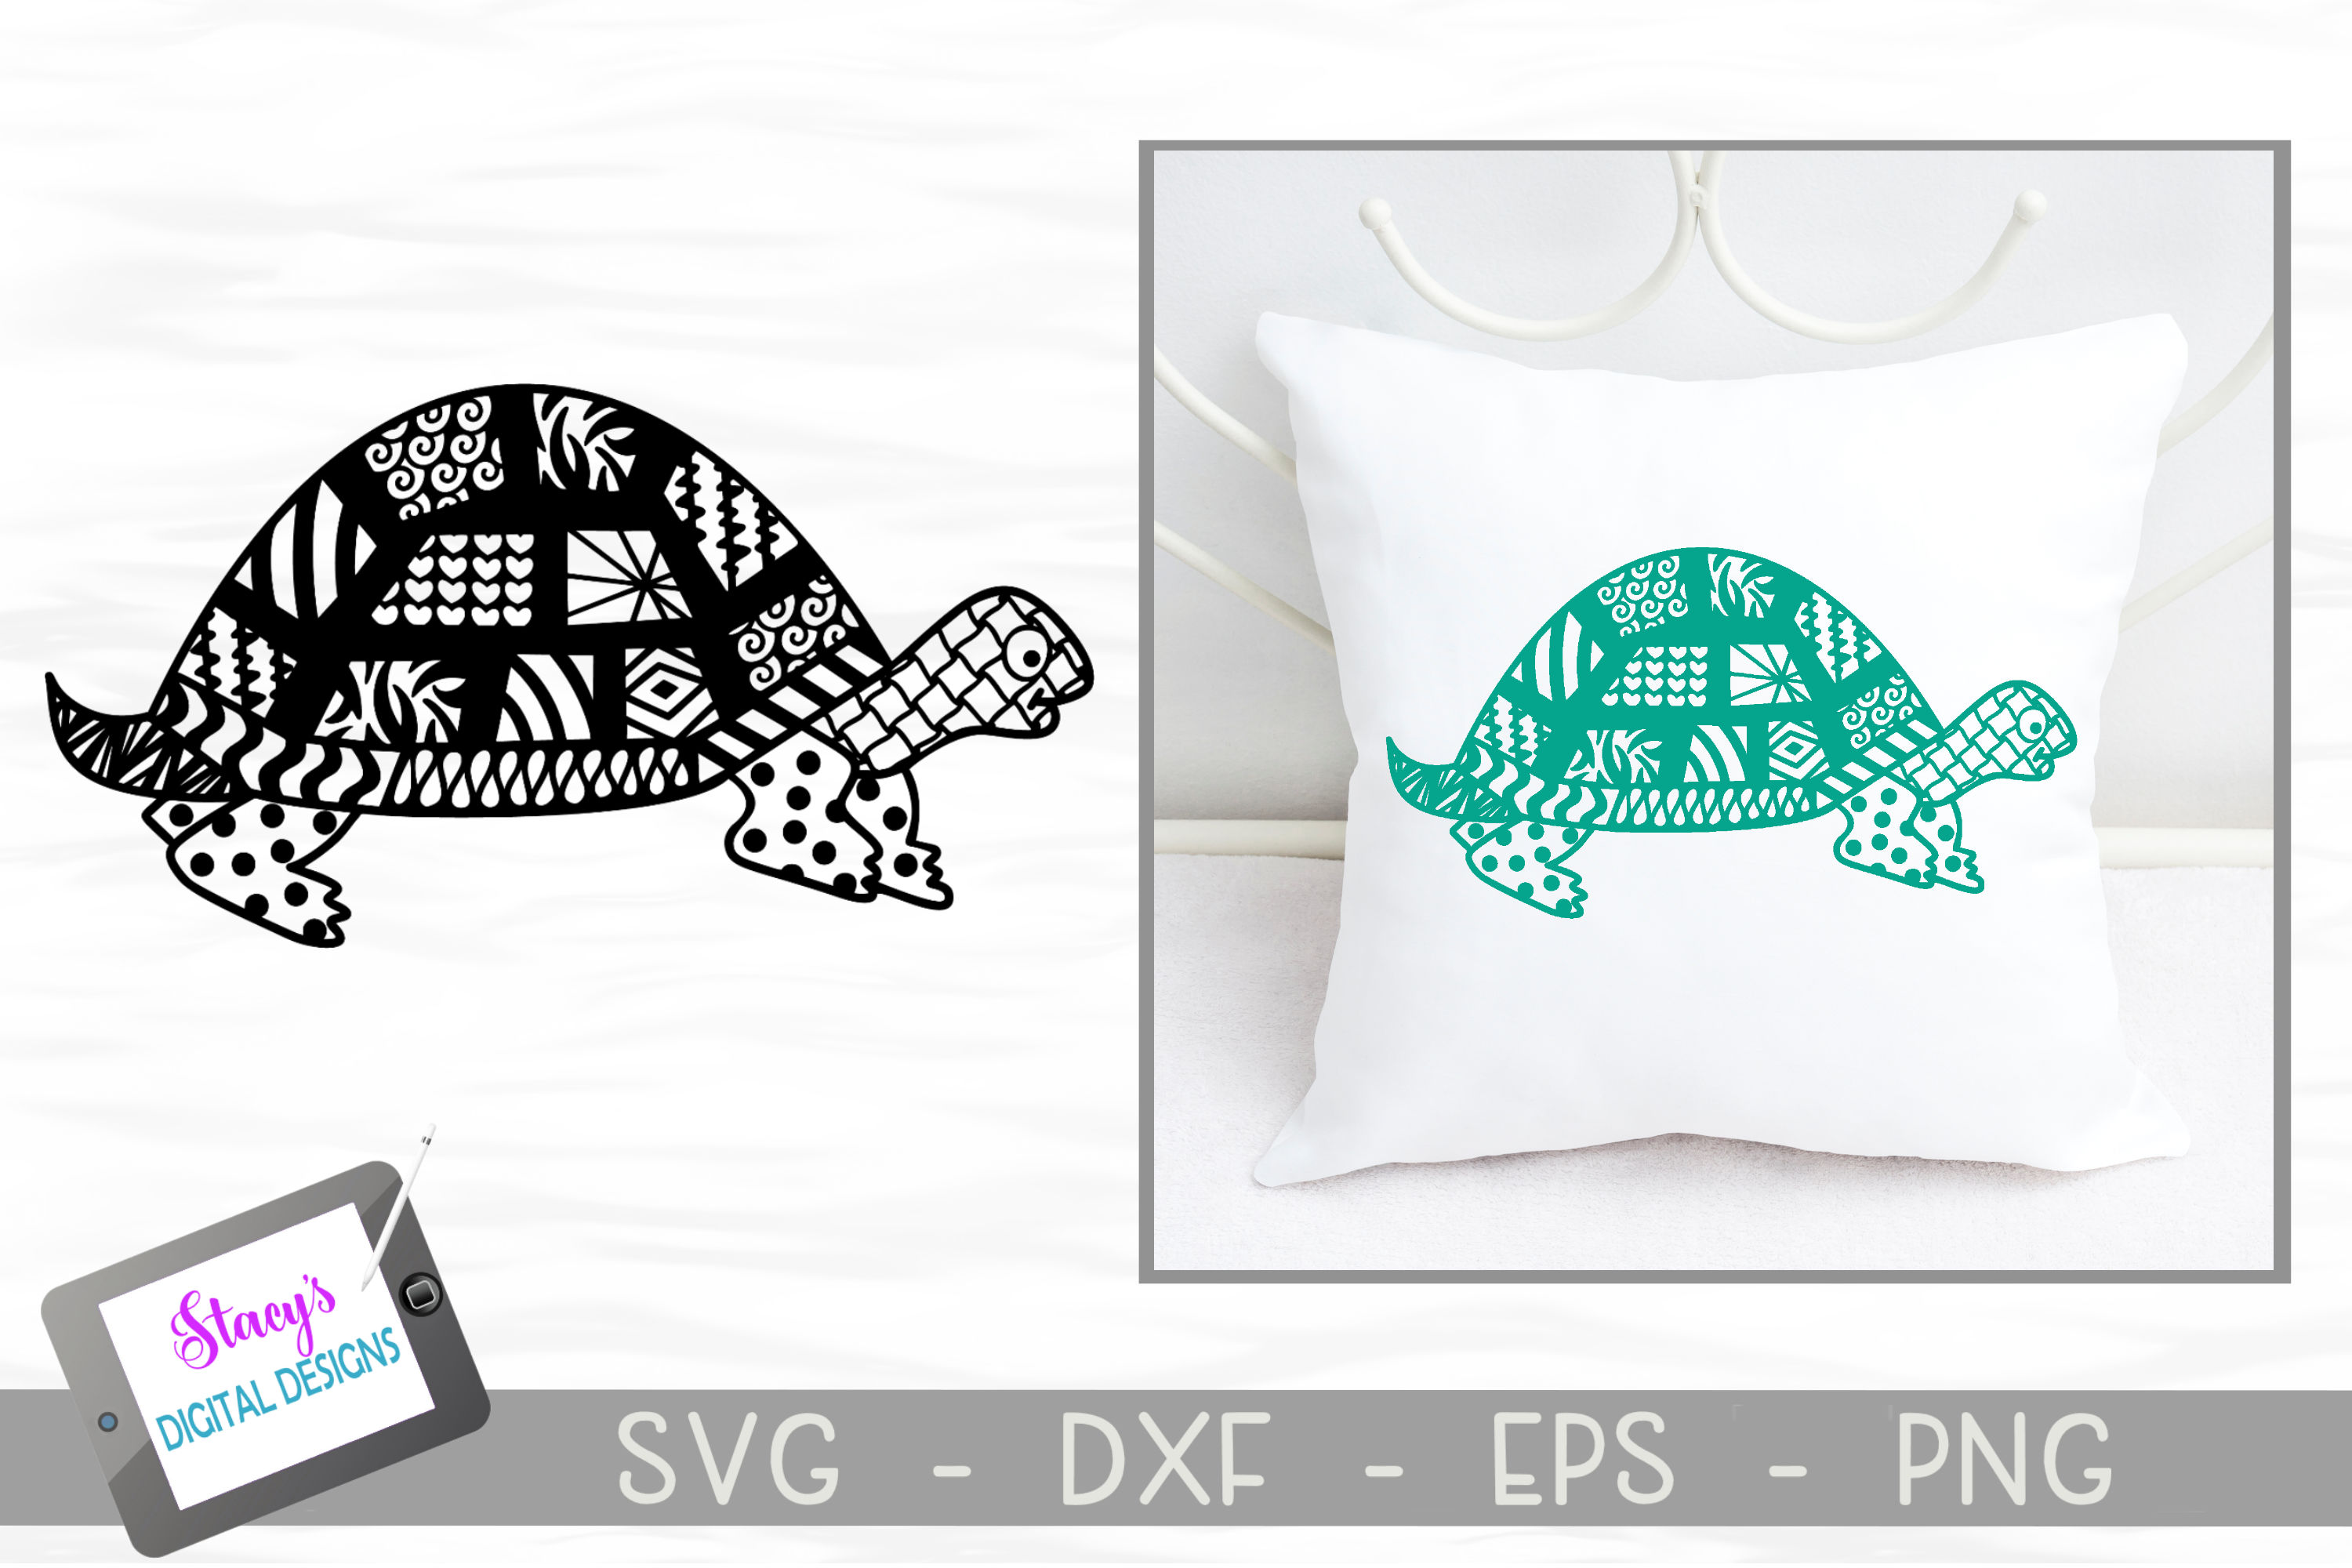 Download Free Zentangle Turtle Design Graphic By Stacysdigitaldesigns for Cricut Explore, Silhouette and other cutting machines.